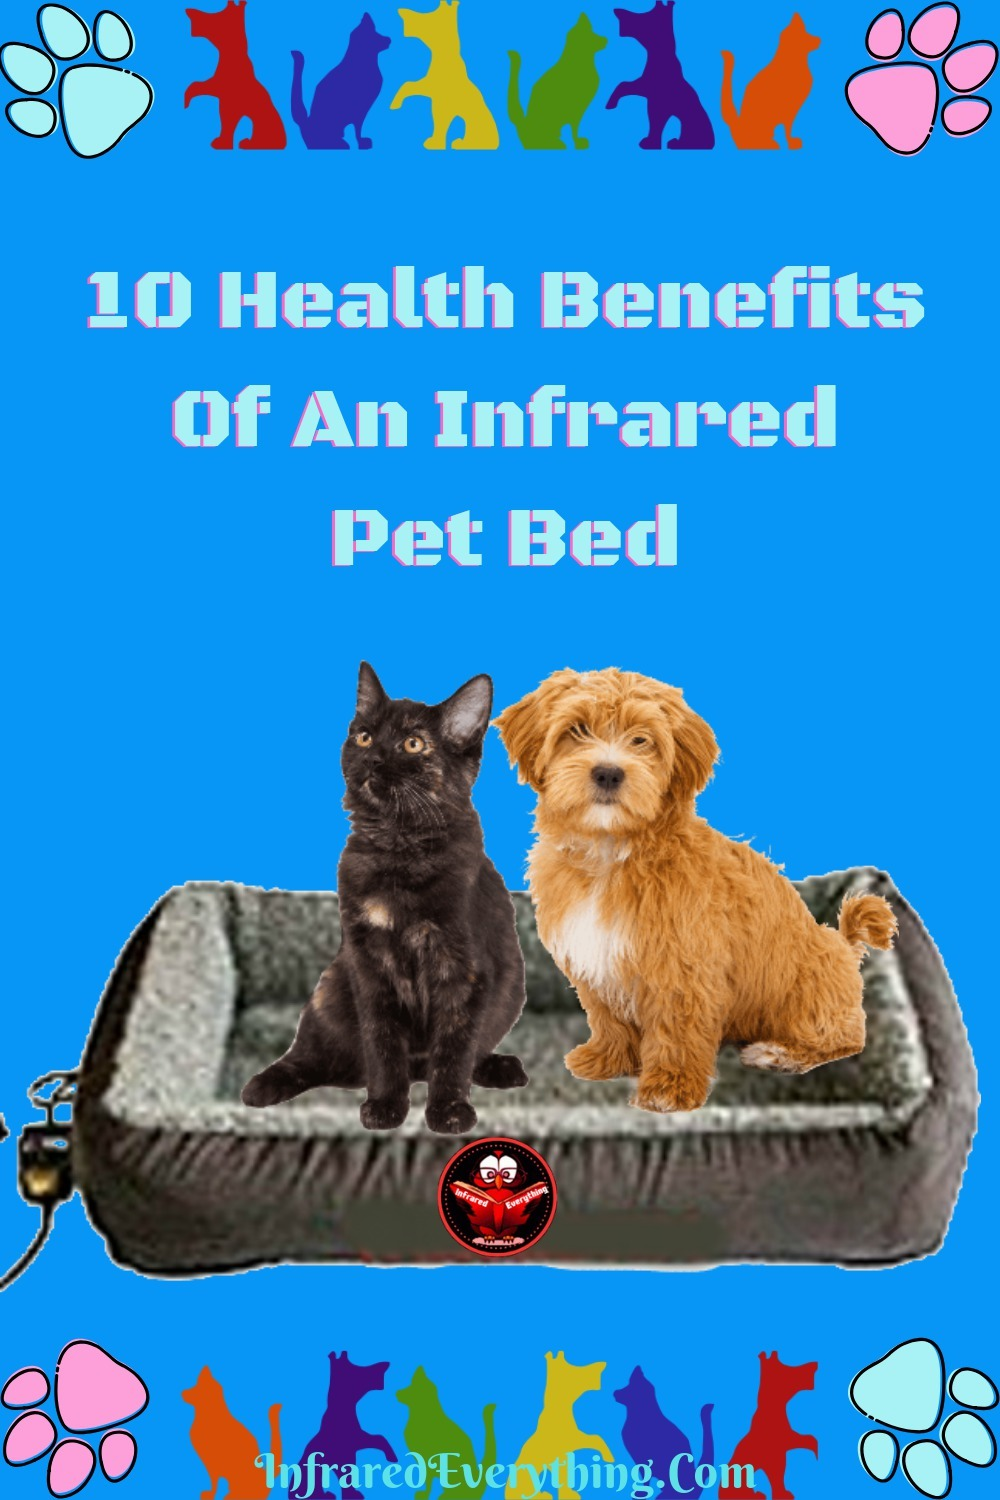 Dog & Cat sitting On Infrared Pet Bed